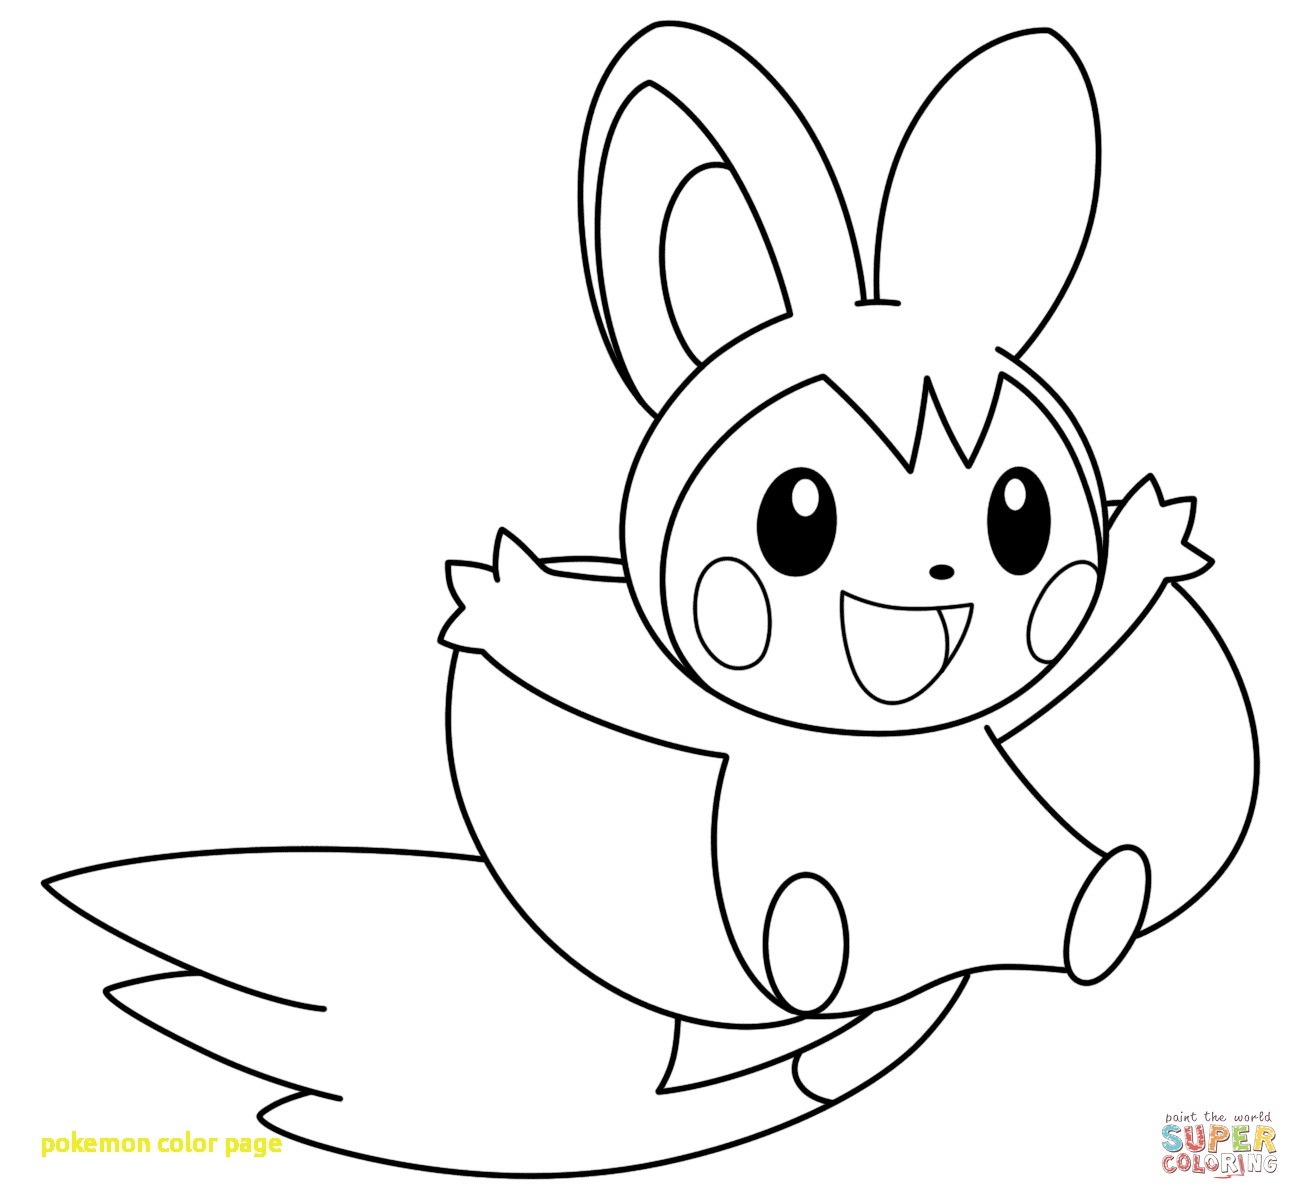 Riolu Coloring Page At Getcolorings